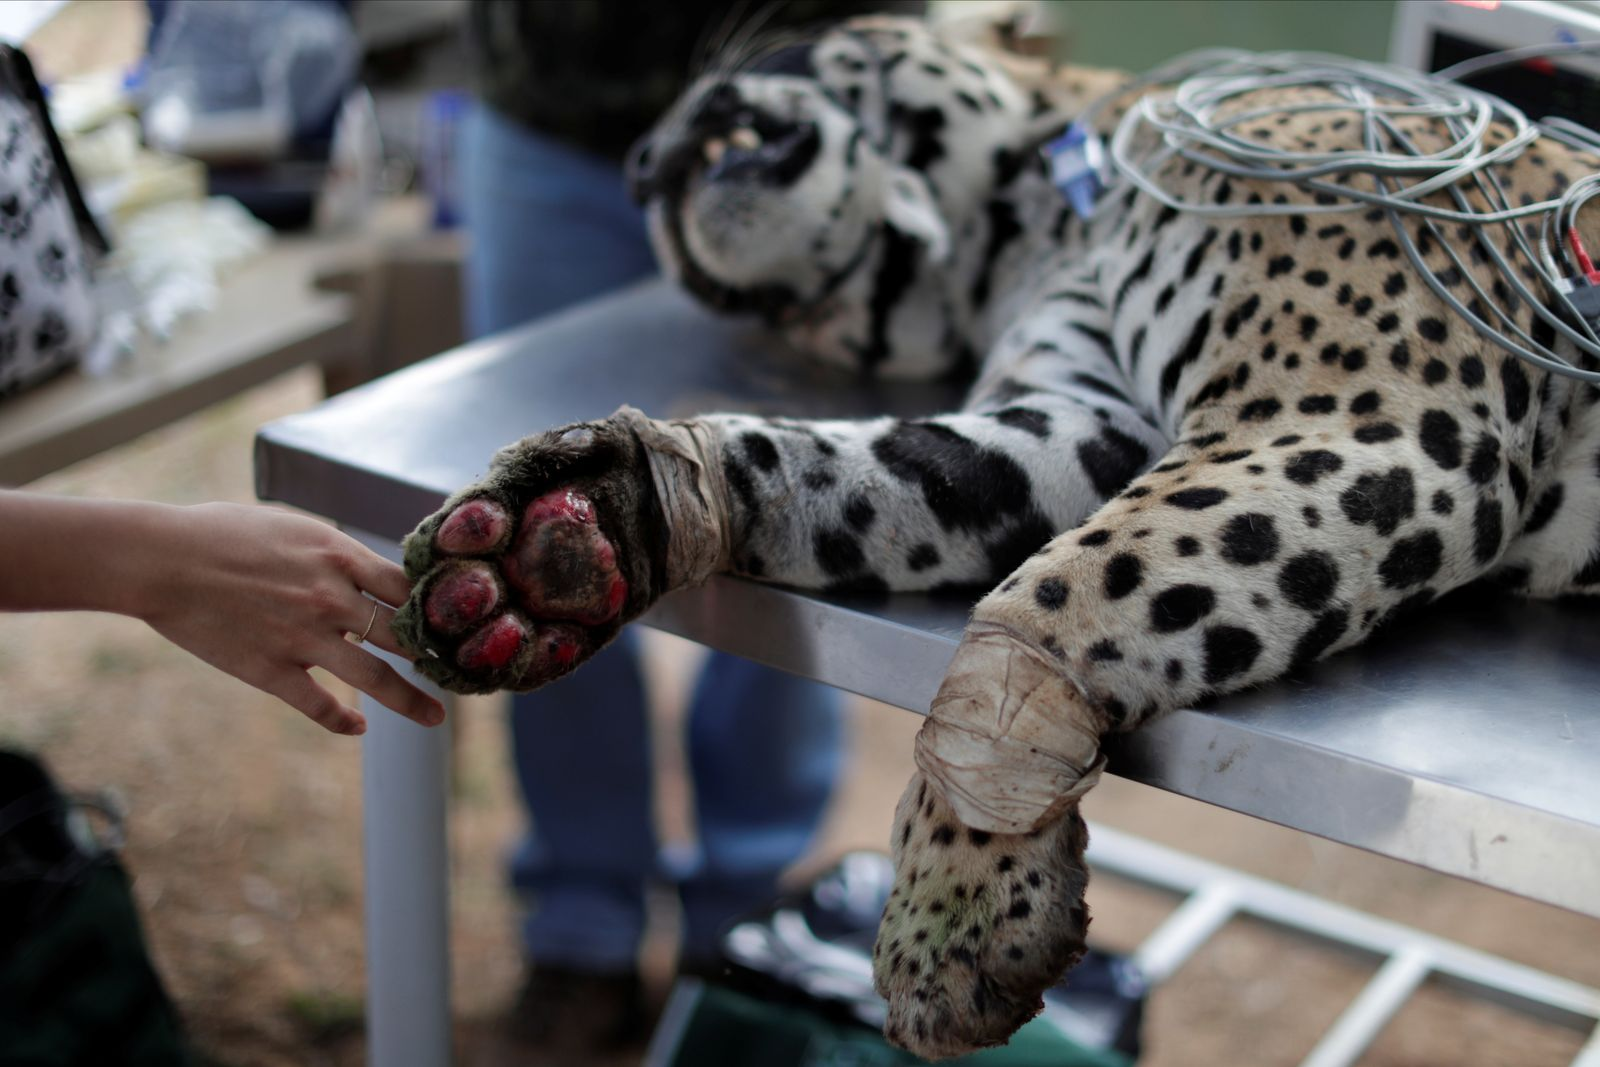 An adult male jaguar named Ousado receives treatment for burn injuries on his paws after a fire in Pantanal, at NGO Nex Institute in Corumba de Goias